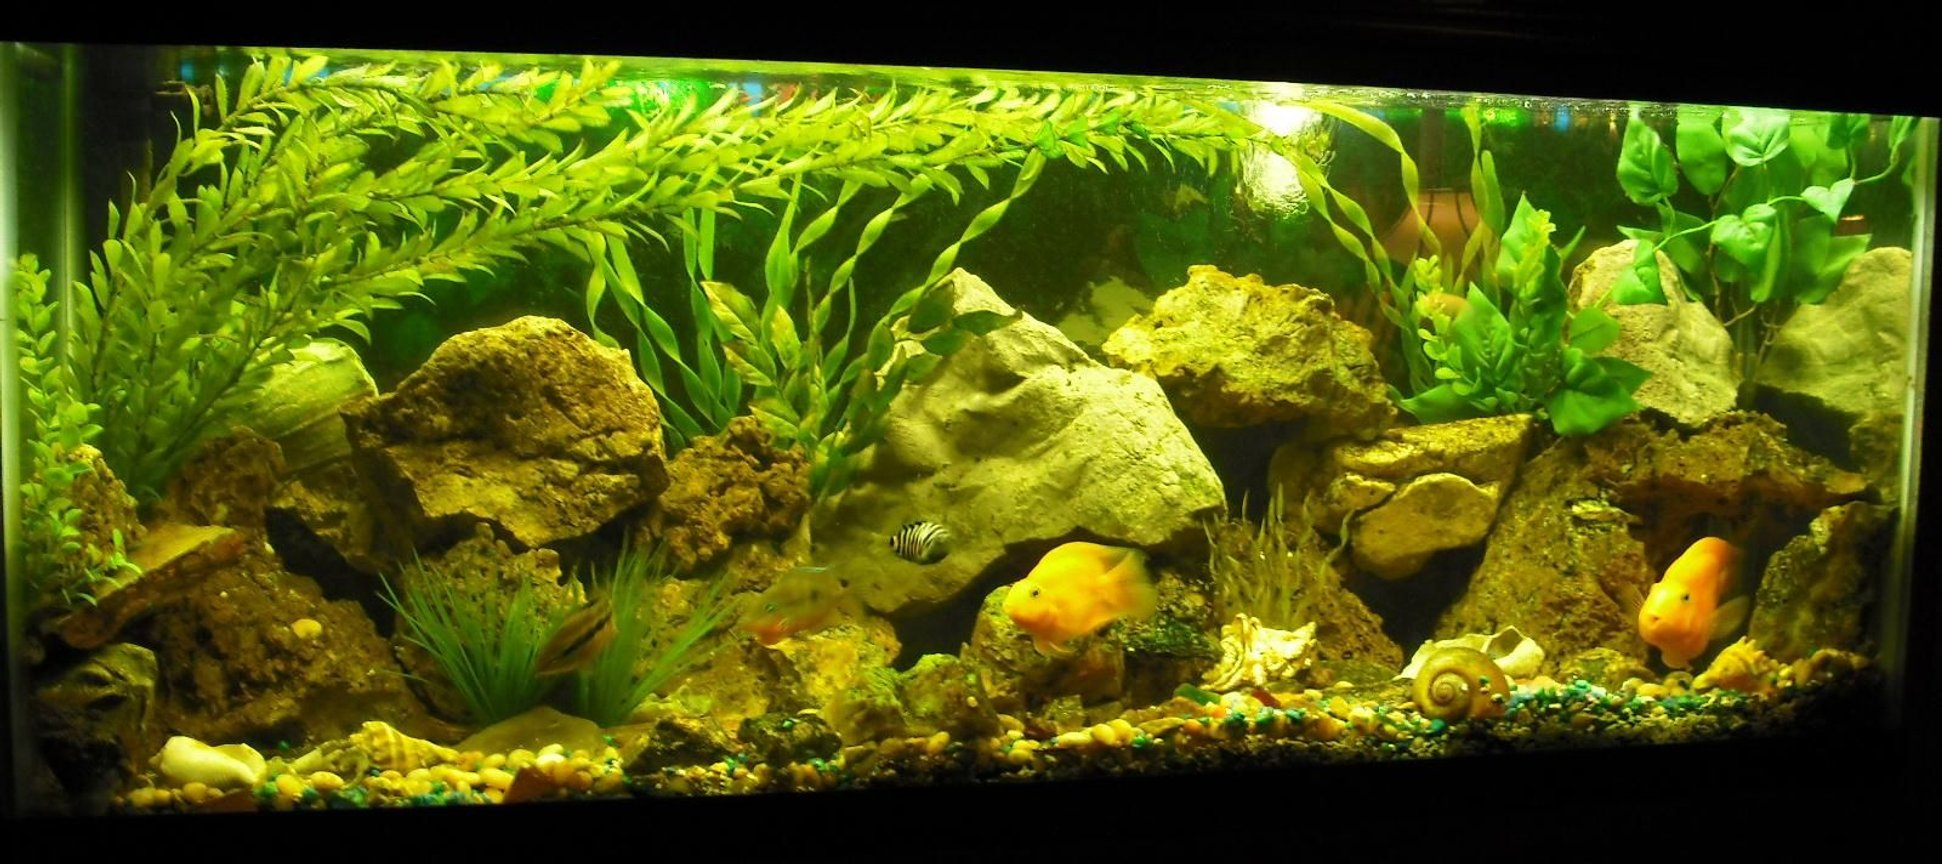 freshwater fish tank (mostly fish and non-living decorations) - 60 gallon w/ rock work & fake plants. The Fish are Cichlid